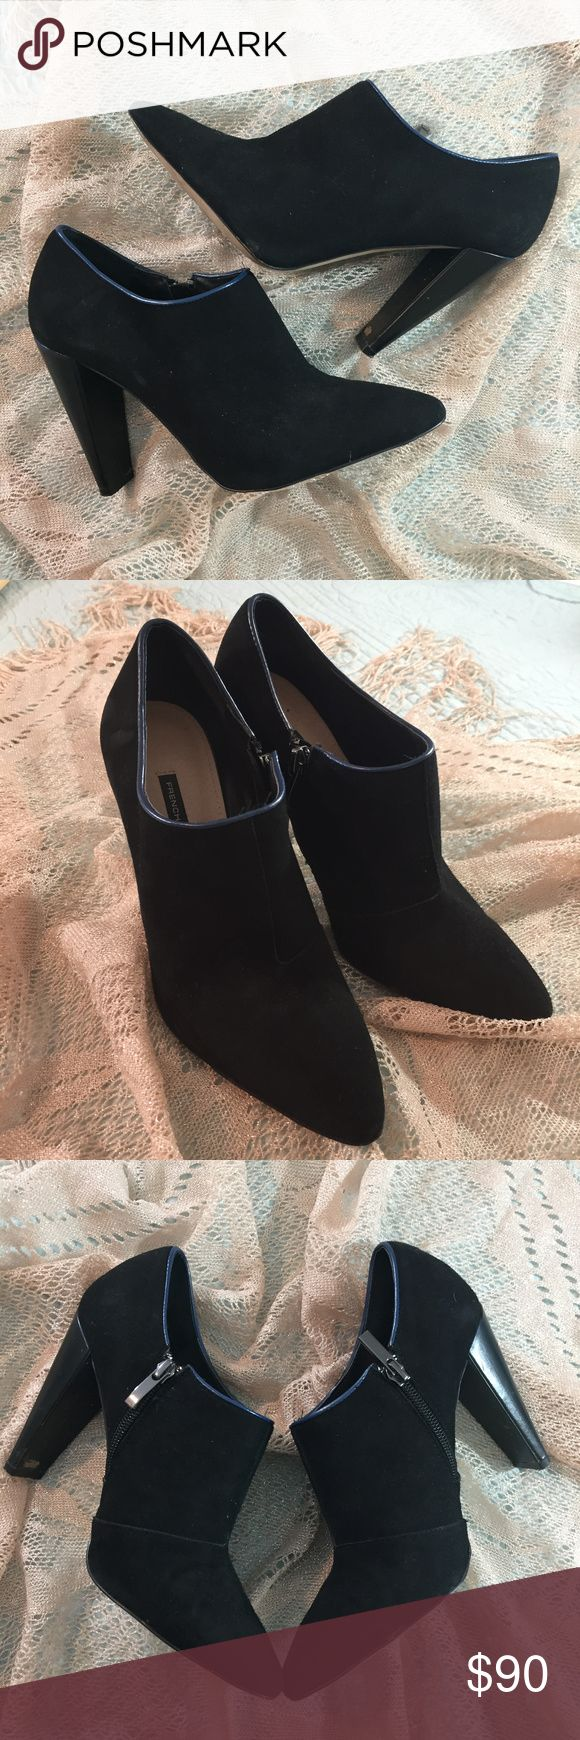 French Connection Black Booties with Blue Trim French Connection Black Booties with Blue Trim Size 28.5/8.5  EUC Smoke Free Home French Connection Shoes Ankle Boots & Booties